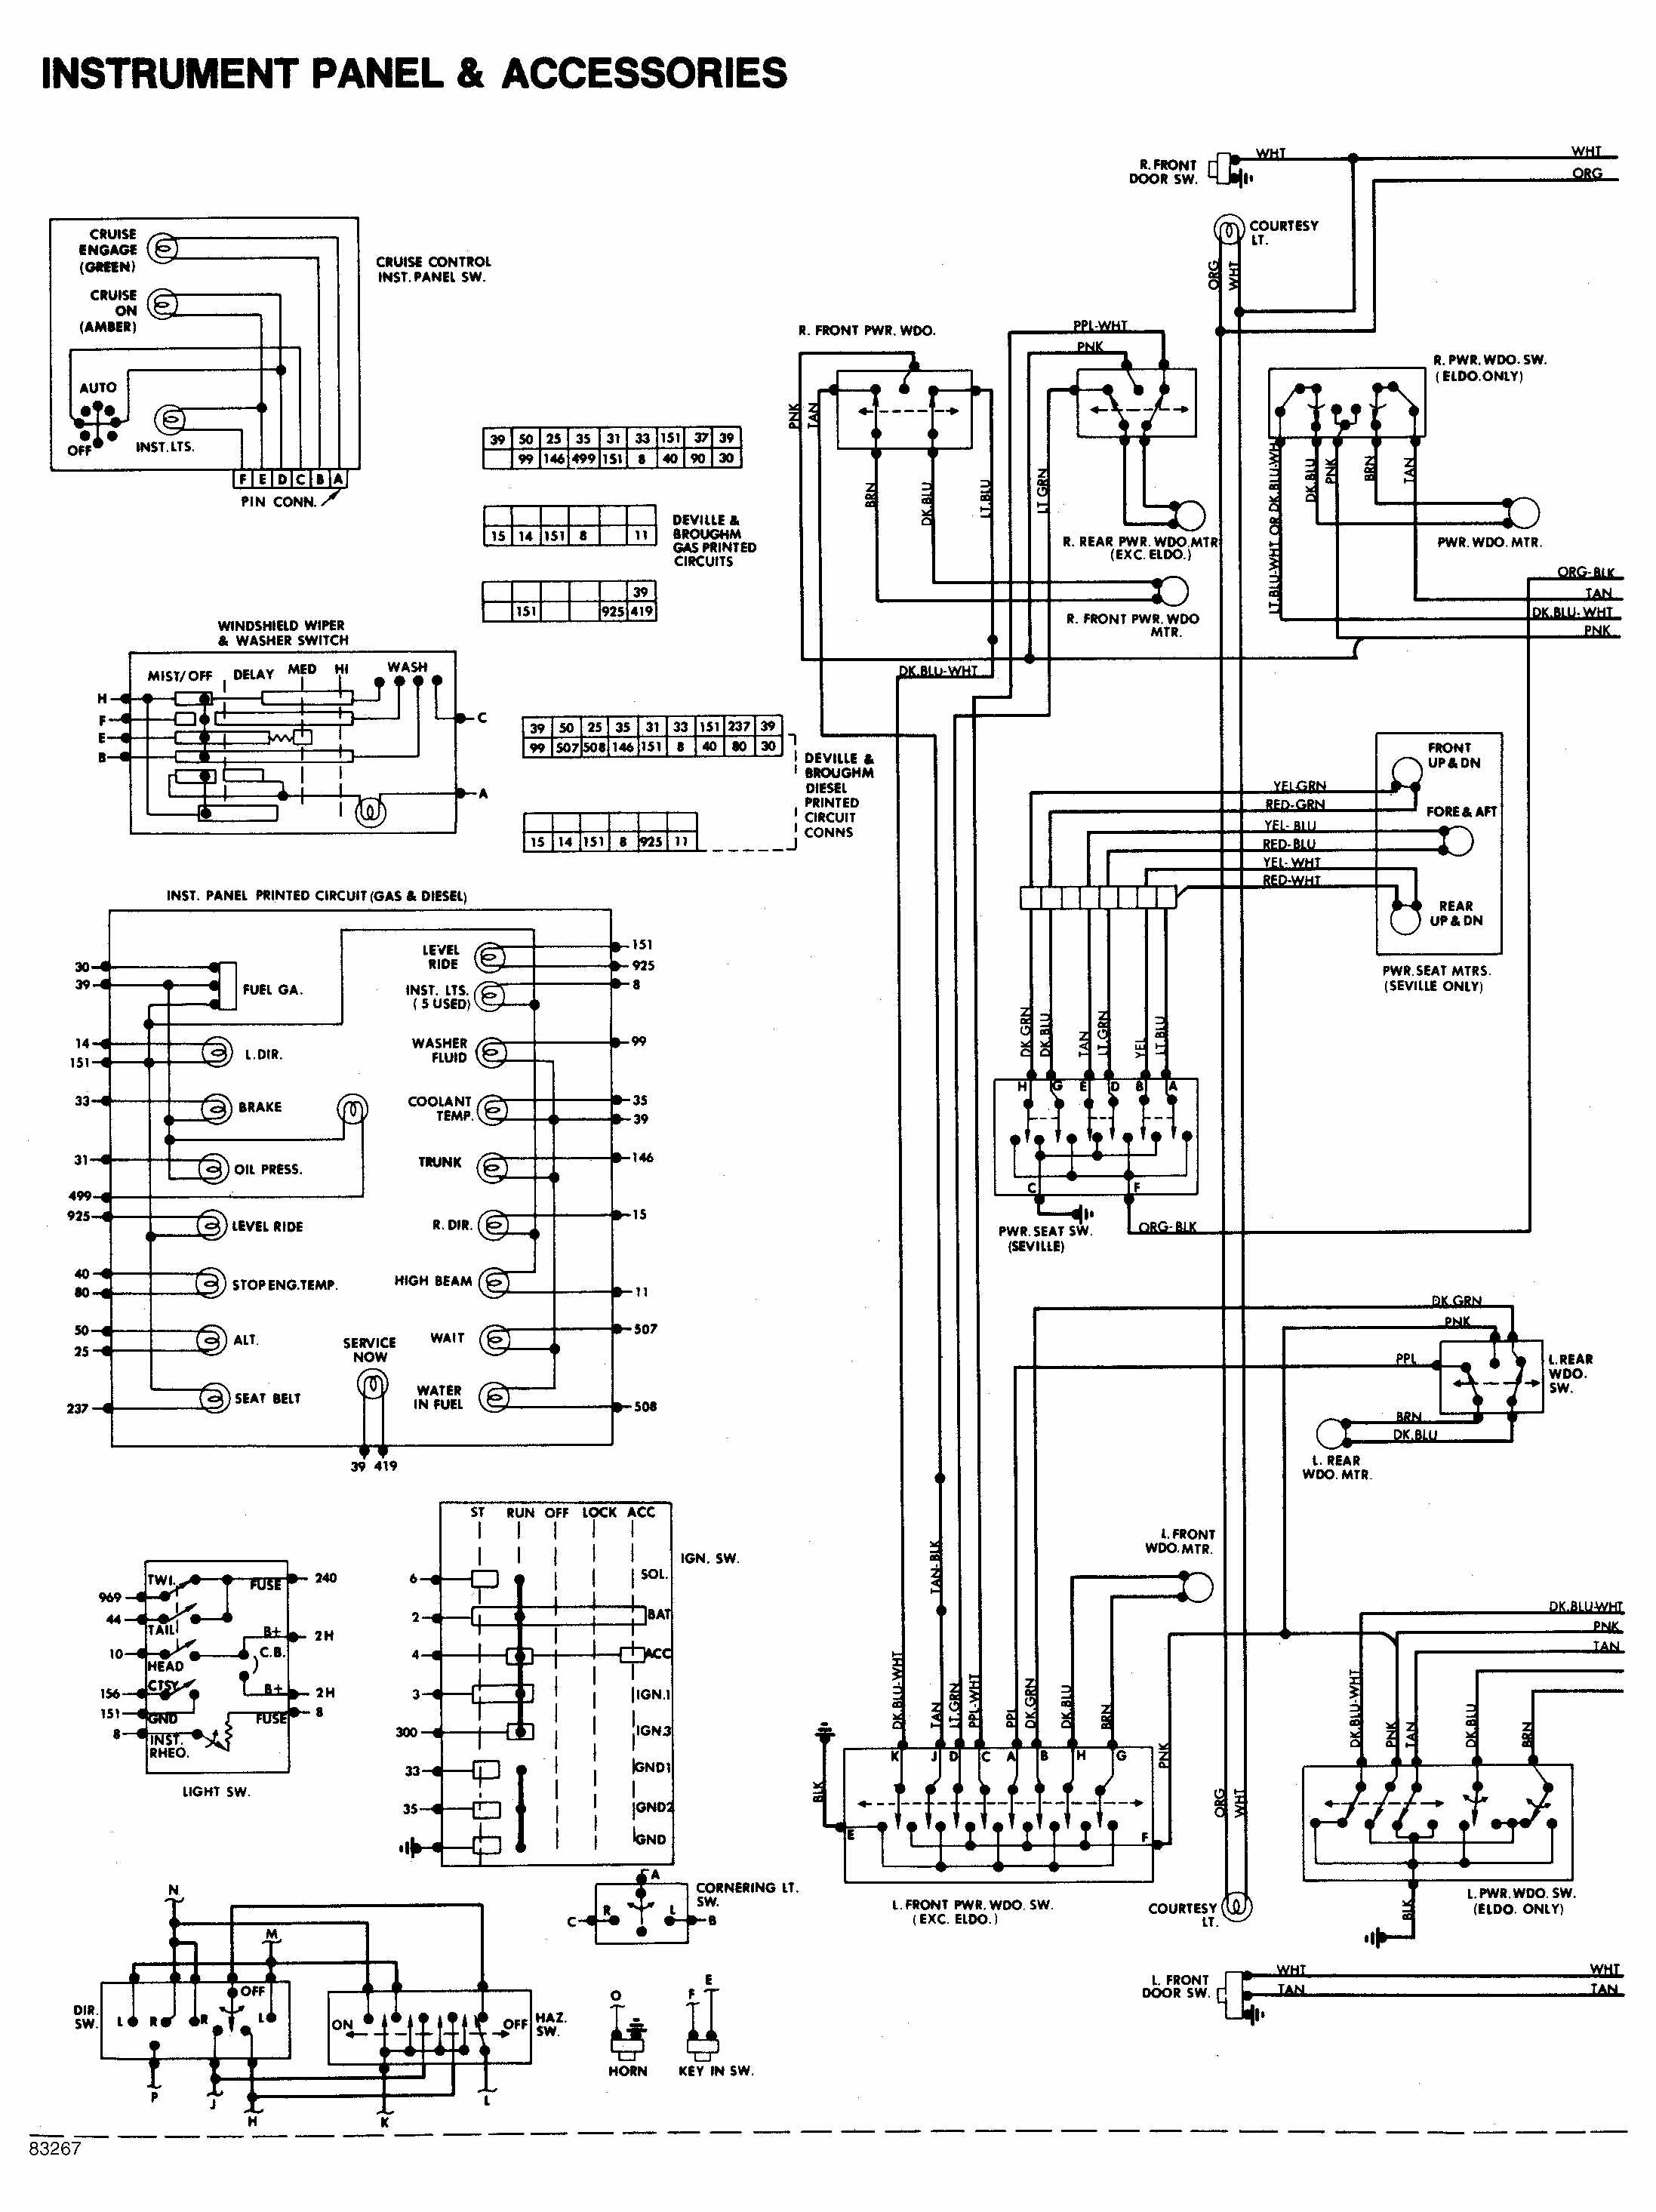 instrument panel and accessories wiring diagram of 1984 cadillac deville chevy diagrams 84 el camino wiring diagram at gsmx.co